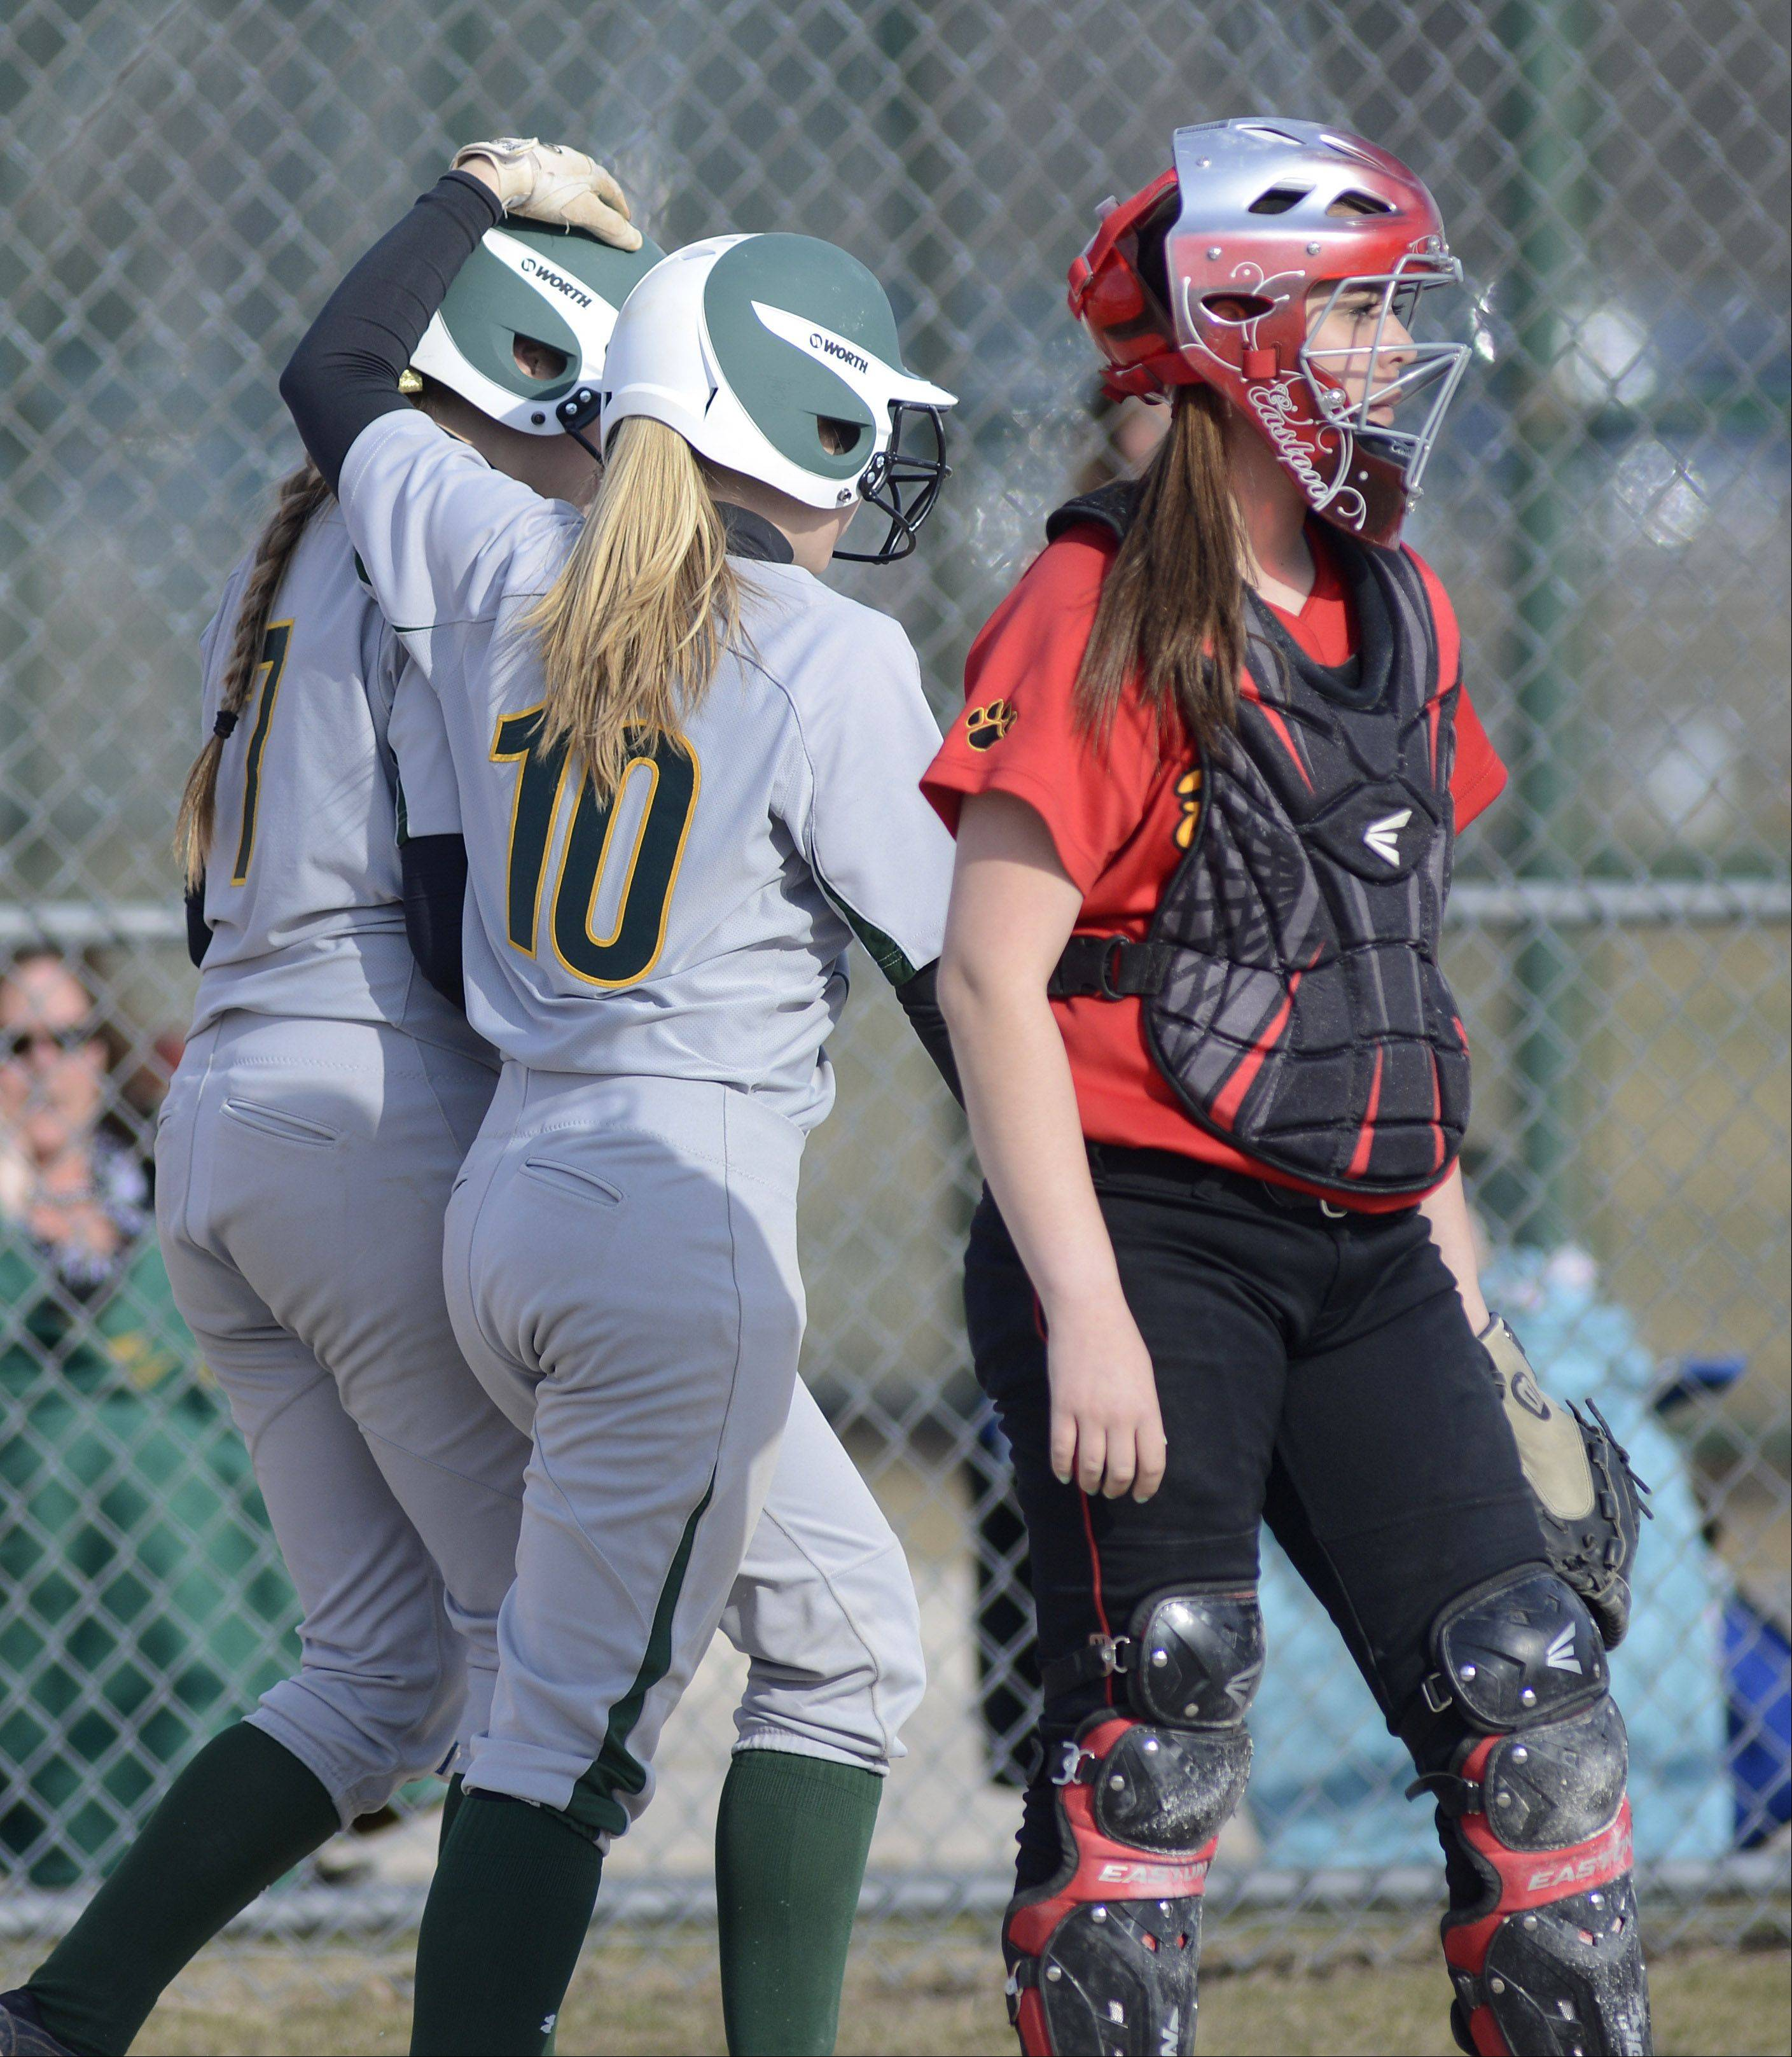 Waubonsie Valley�s Shannon Hohman, left, is congratulated by teammate Amanda Lack after scoring a run as they walk back to the dugout past Batavia catcher Brieann Cruz in the second inning on Friday, April 5. 7